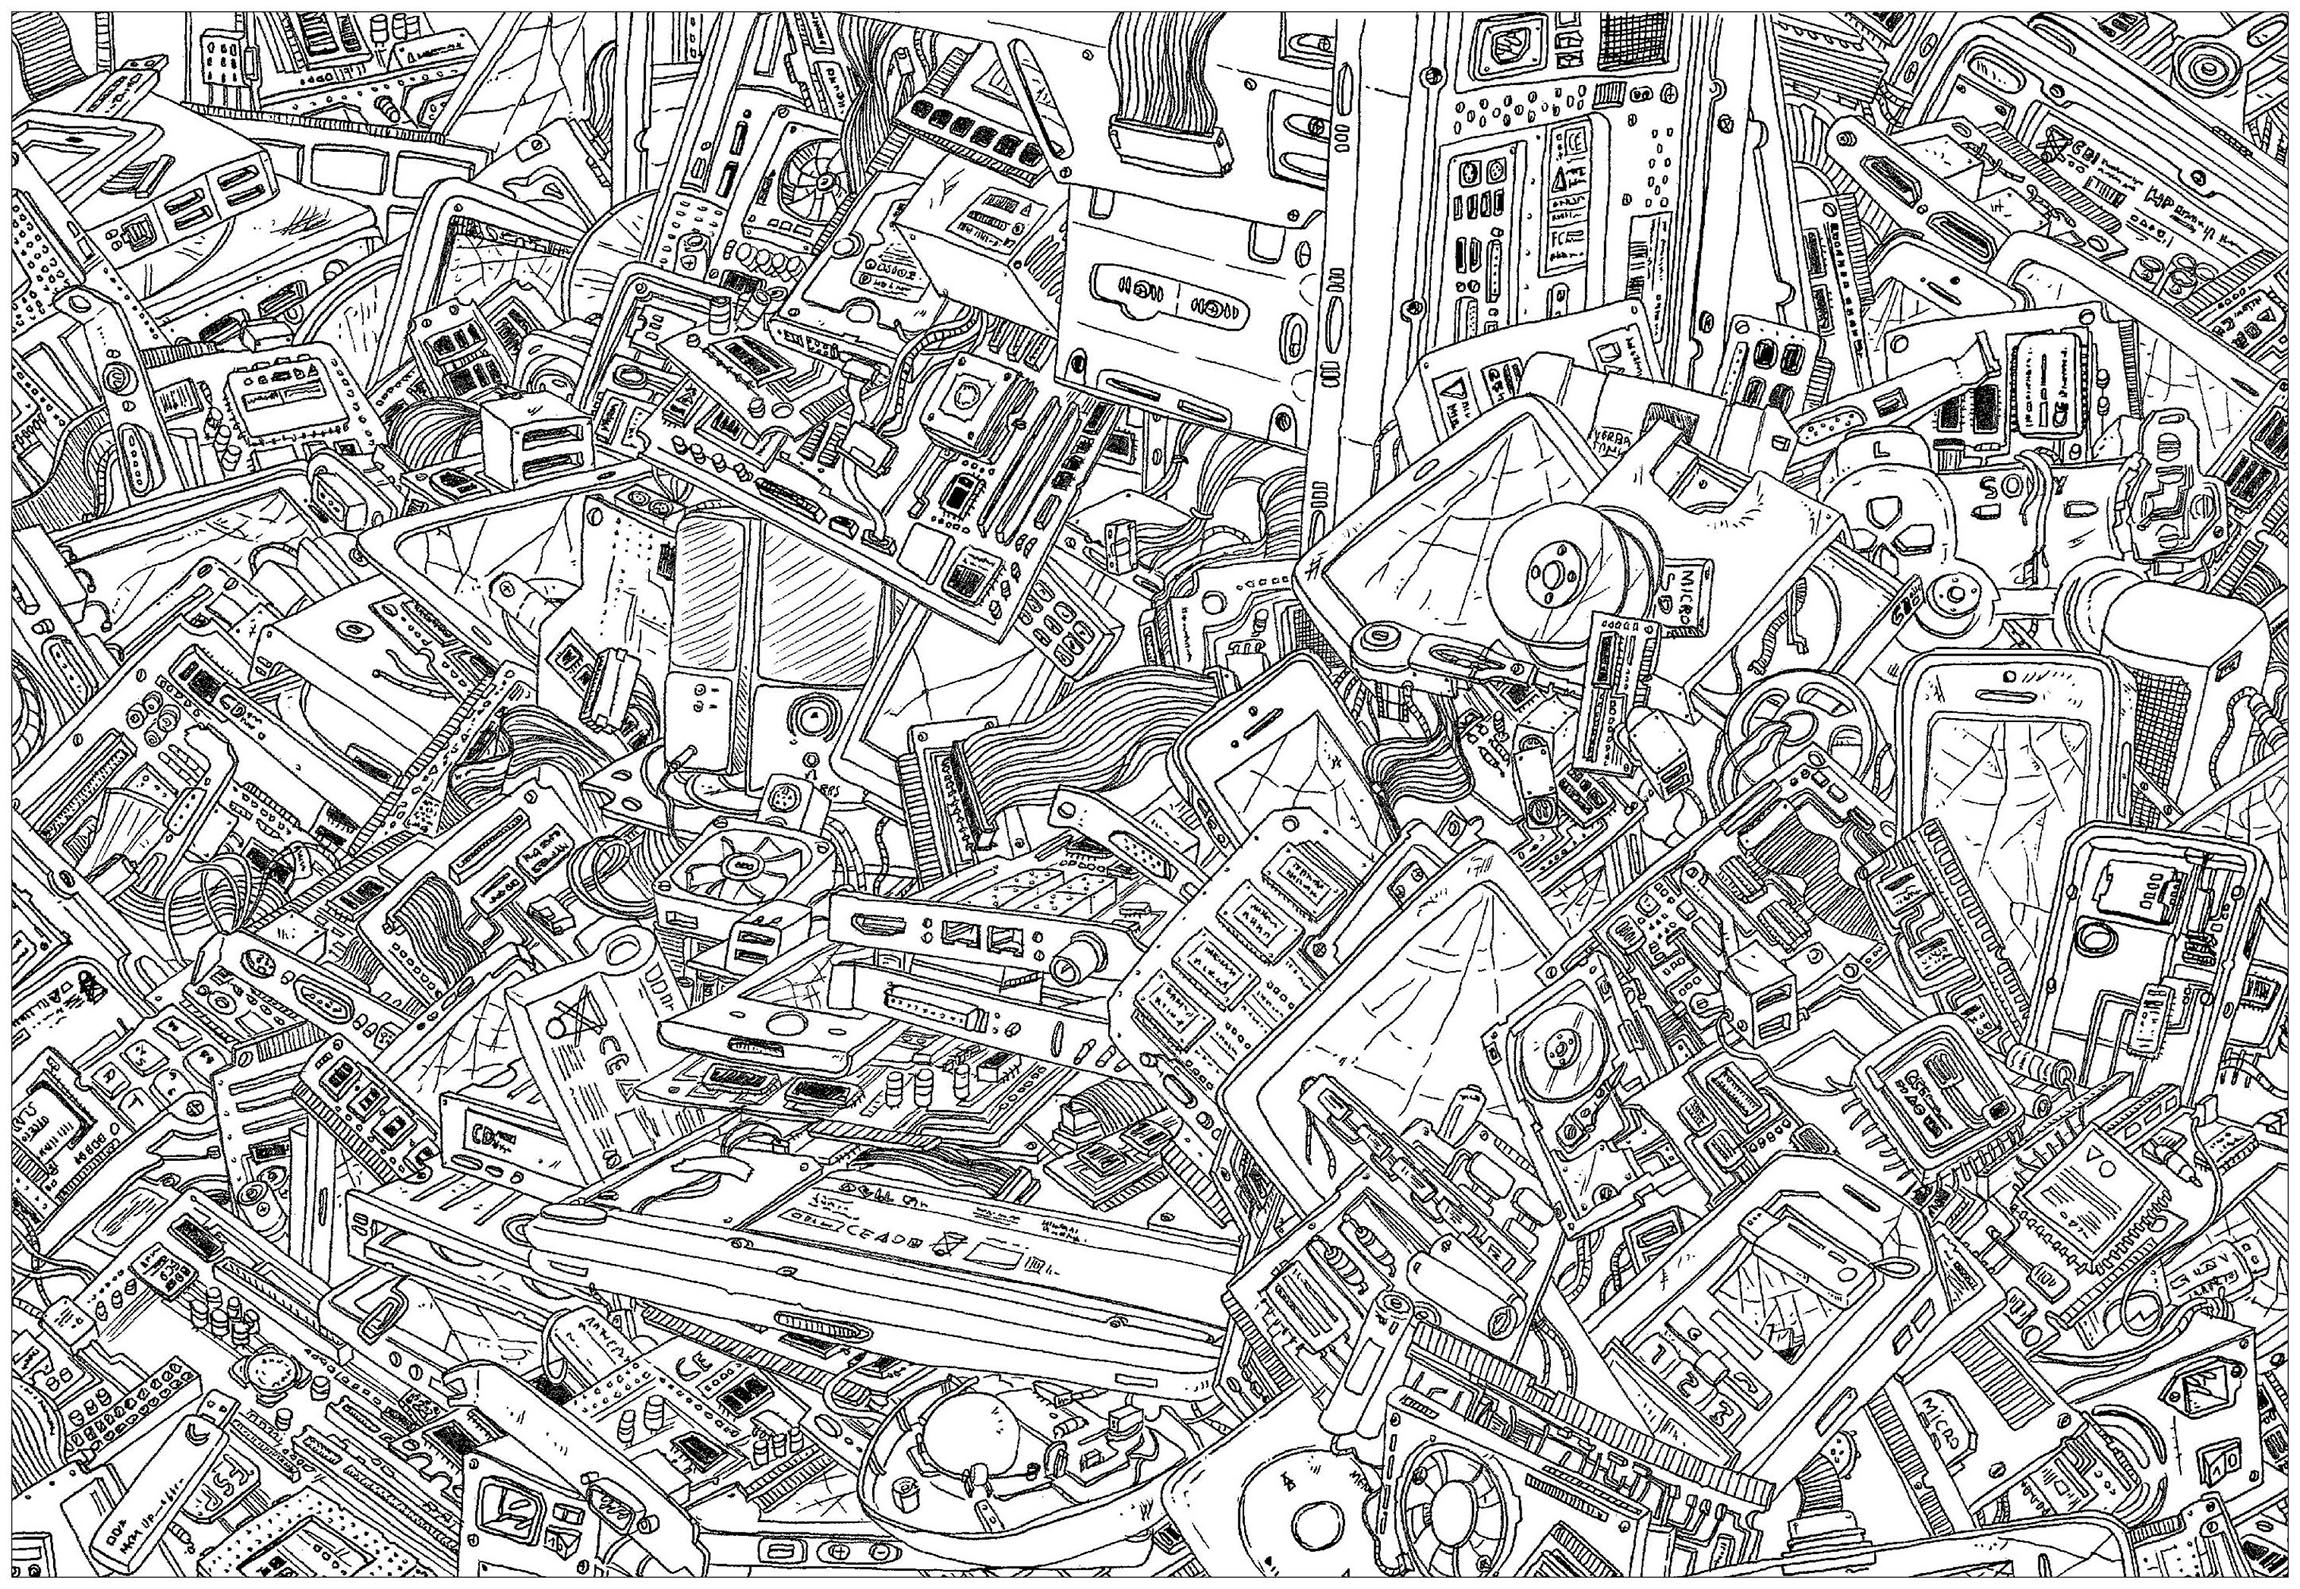 'Computers', a complex coloring page, 'Where is Waldo ?' style